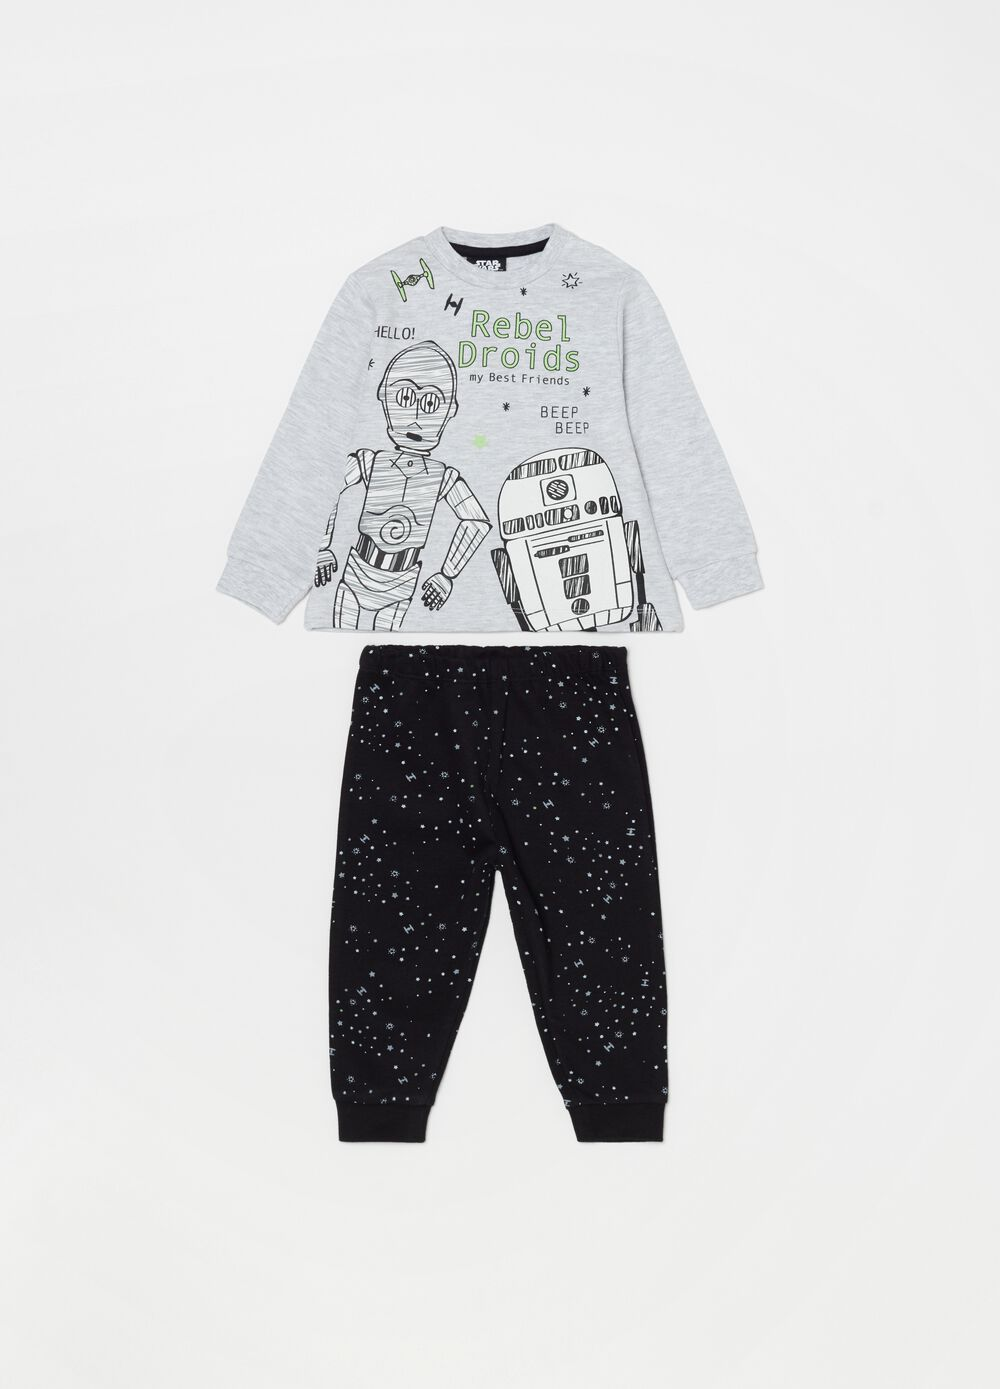 Star Wars crew neck top and trousers pyjama set